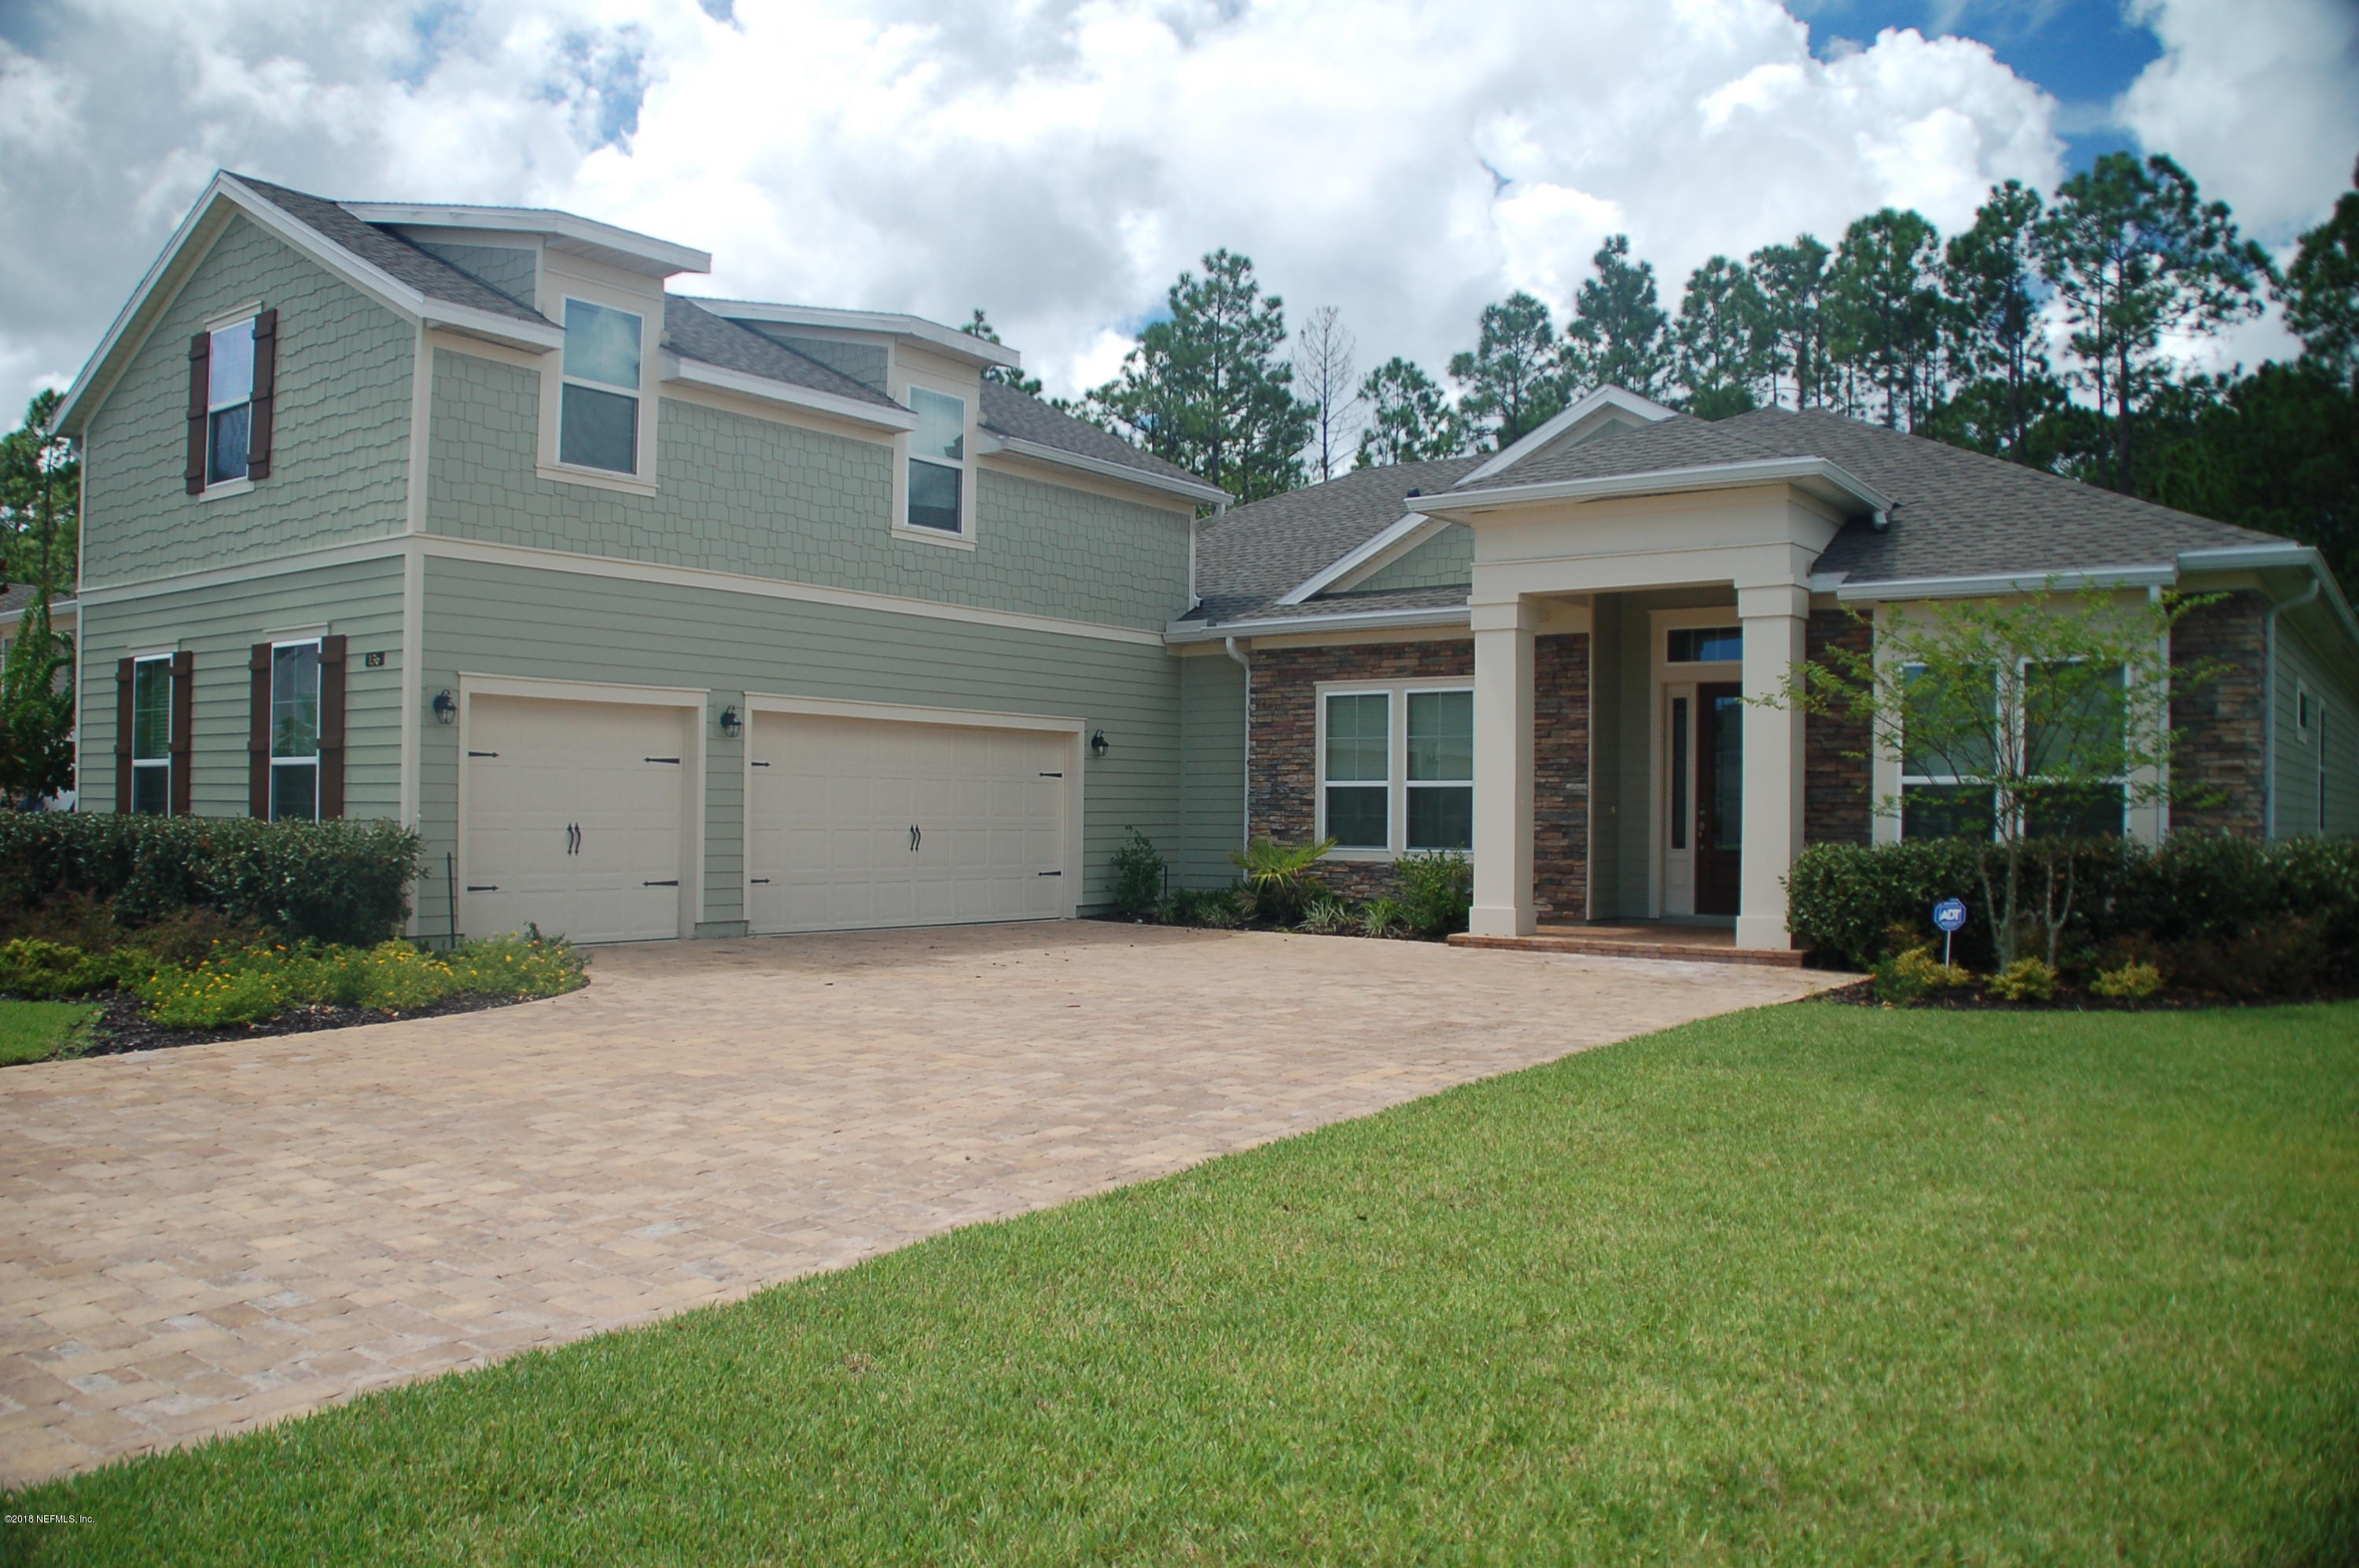 136 LAZO, ST AUGUSTINE, FLORIDA 32095, 5 Bedrooms Bedrooms, ,5 BathroomsBathrooms,Residential - single family,For sale,LAZO,955410